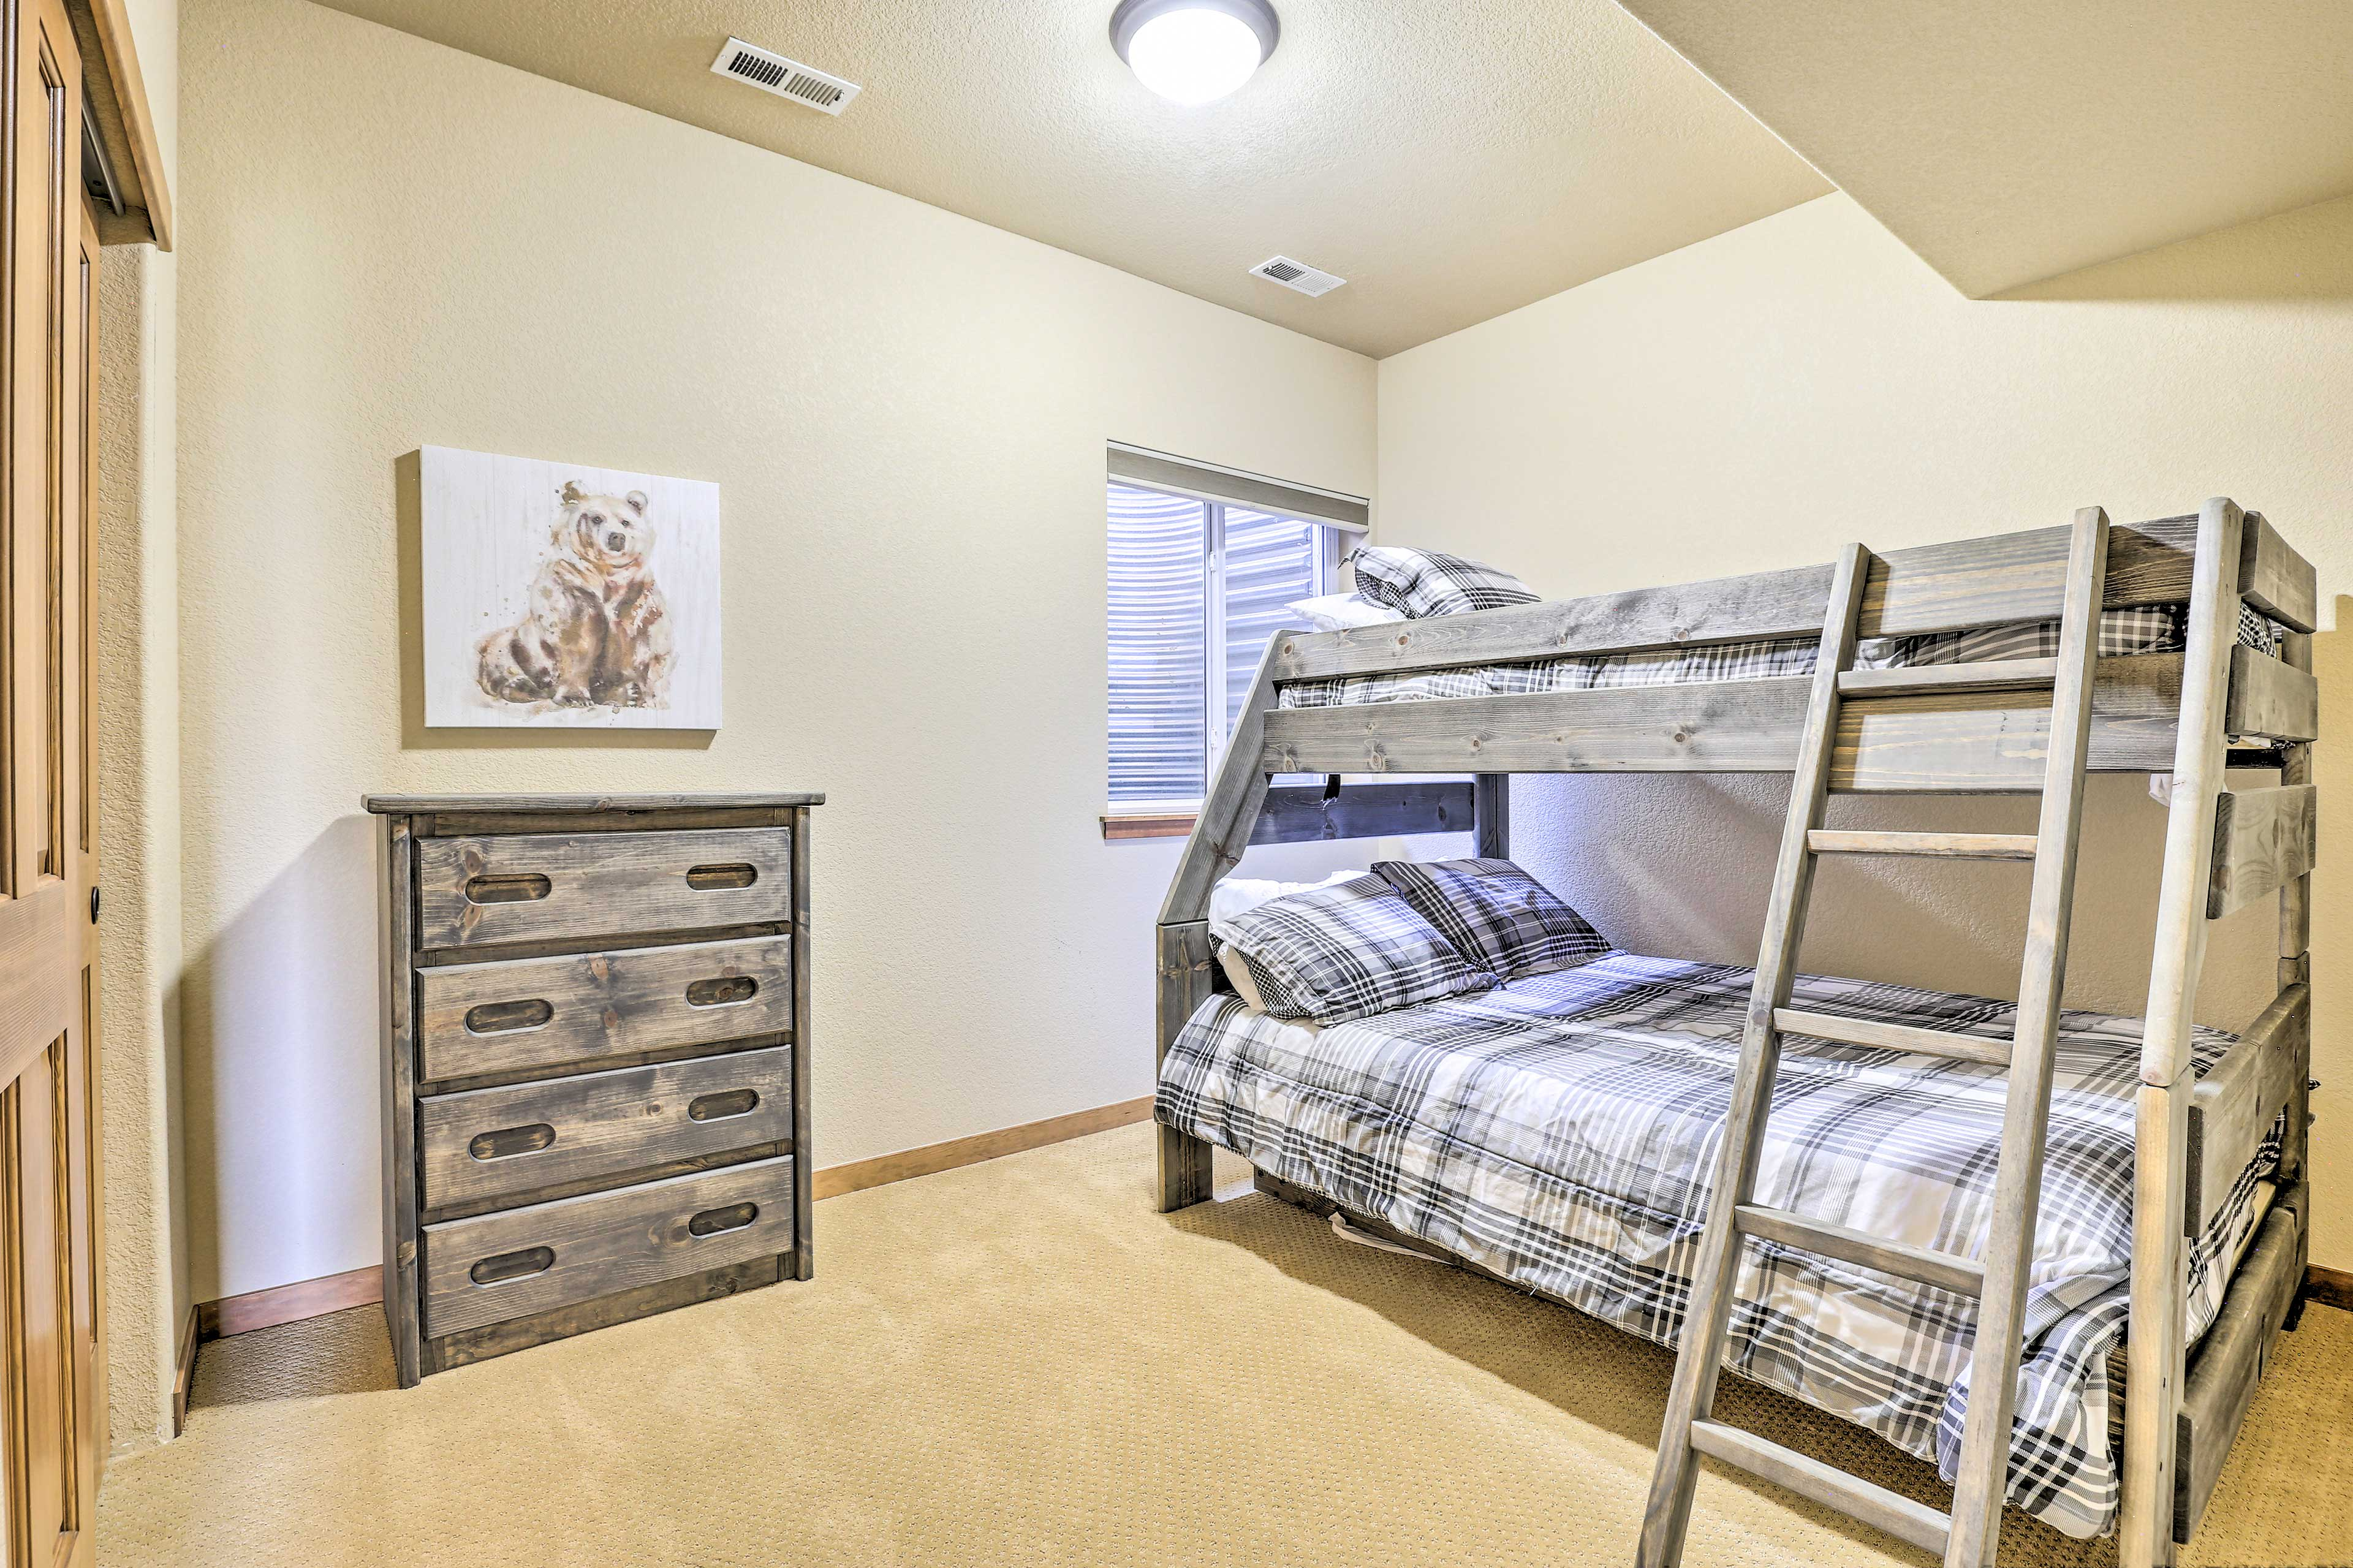 Take your pick of the top or bottom bunk.